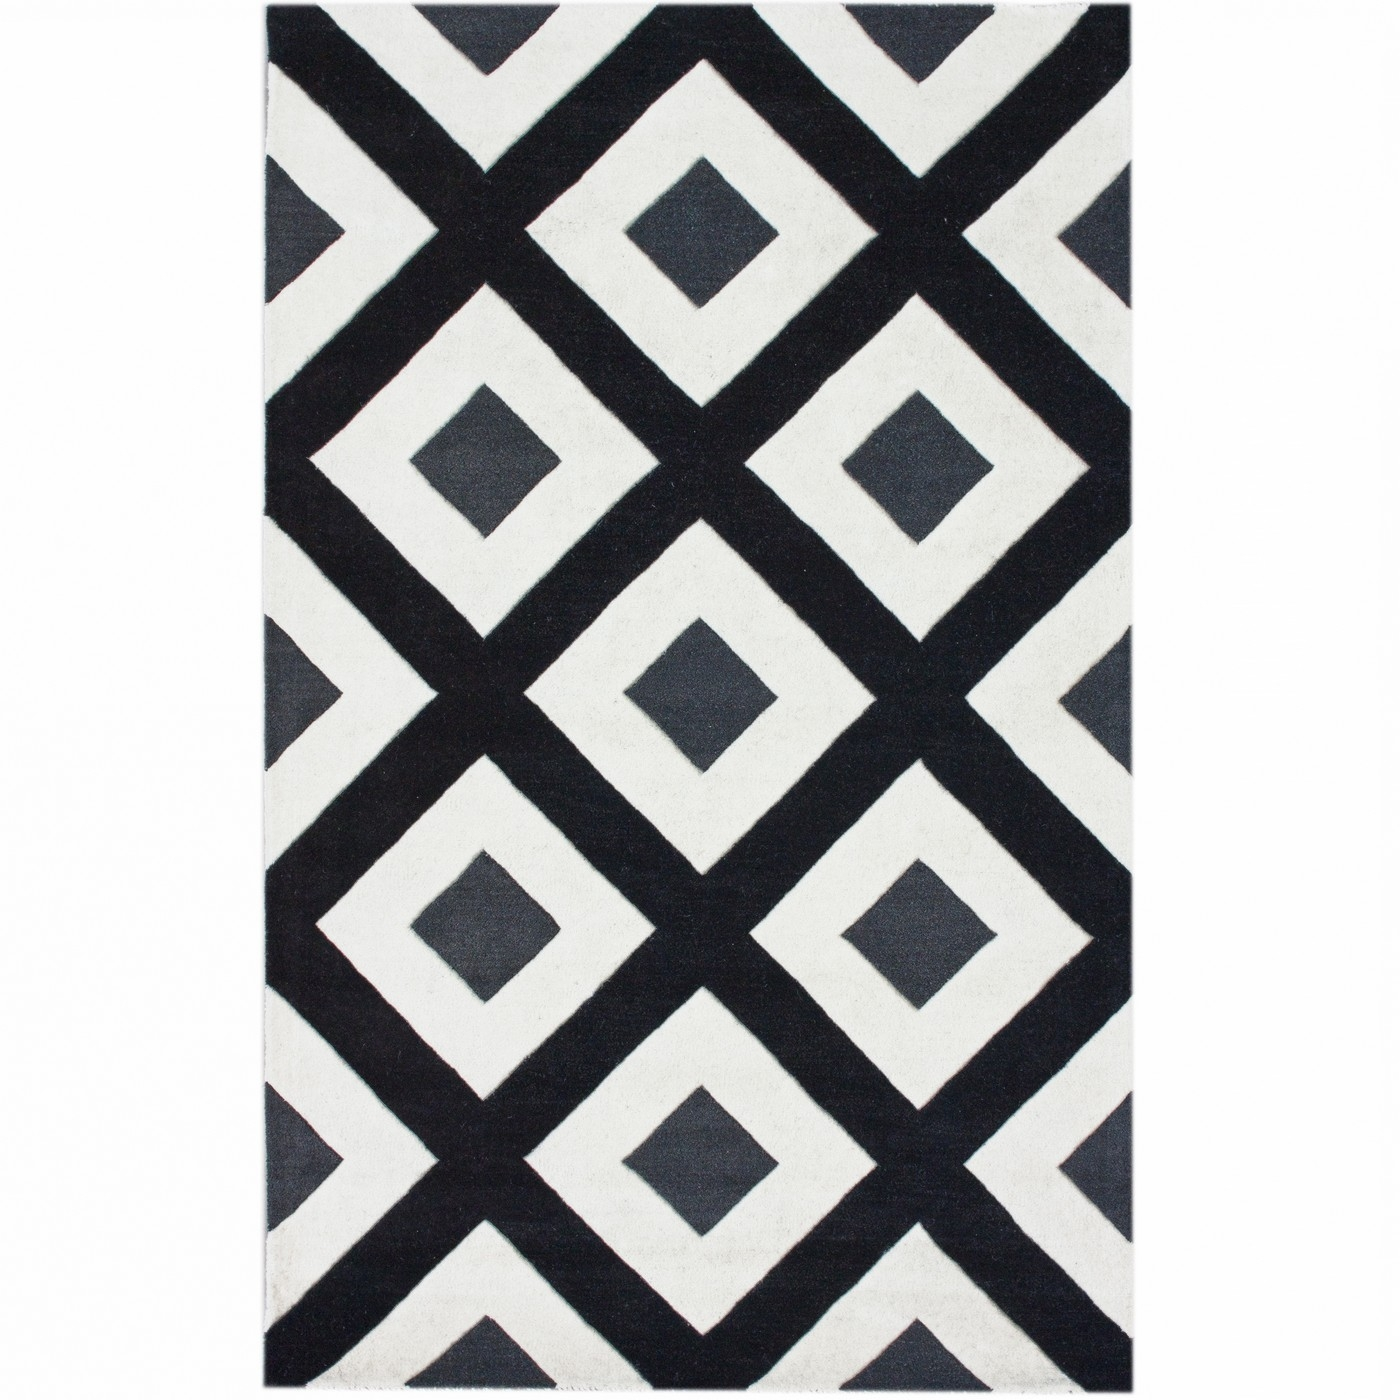 Black And White Bathroom Rugrugs black and white bathroom rugs black and white geometric